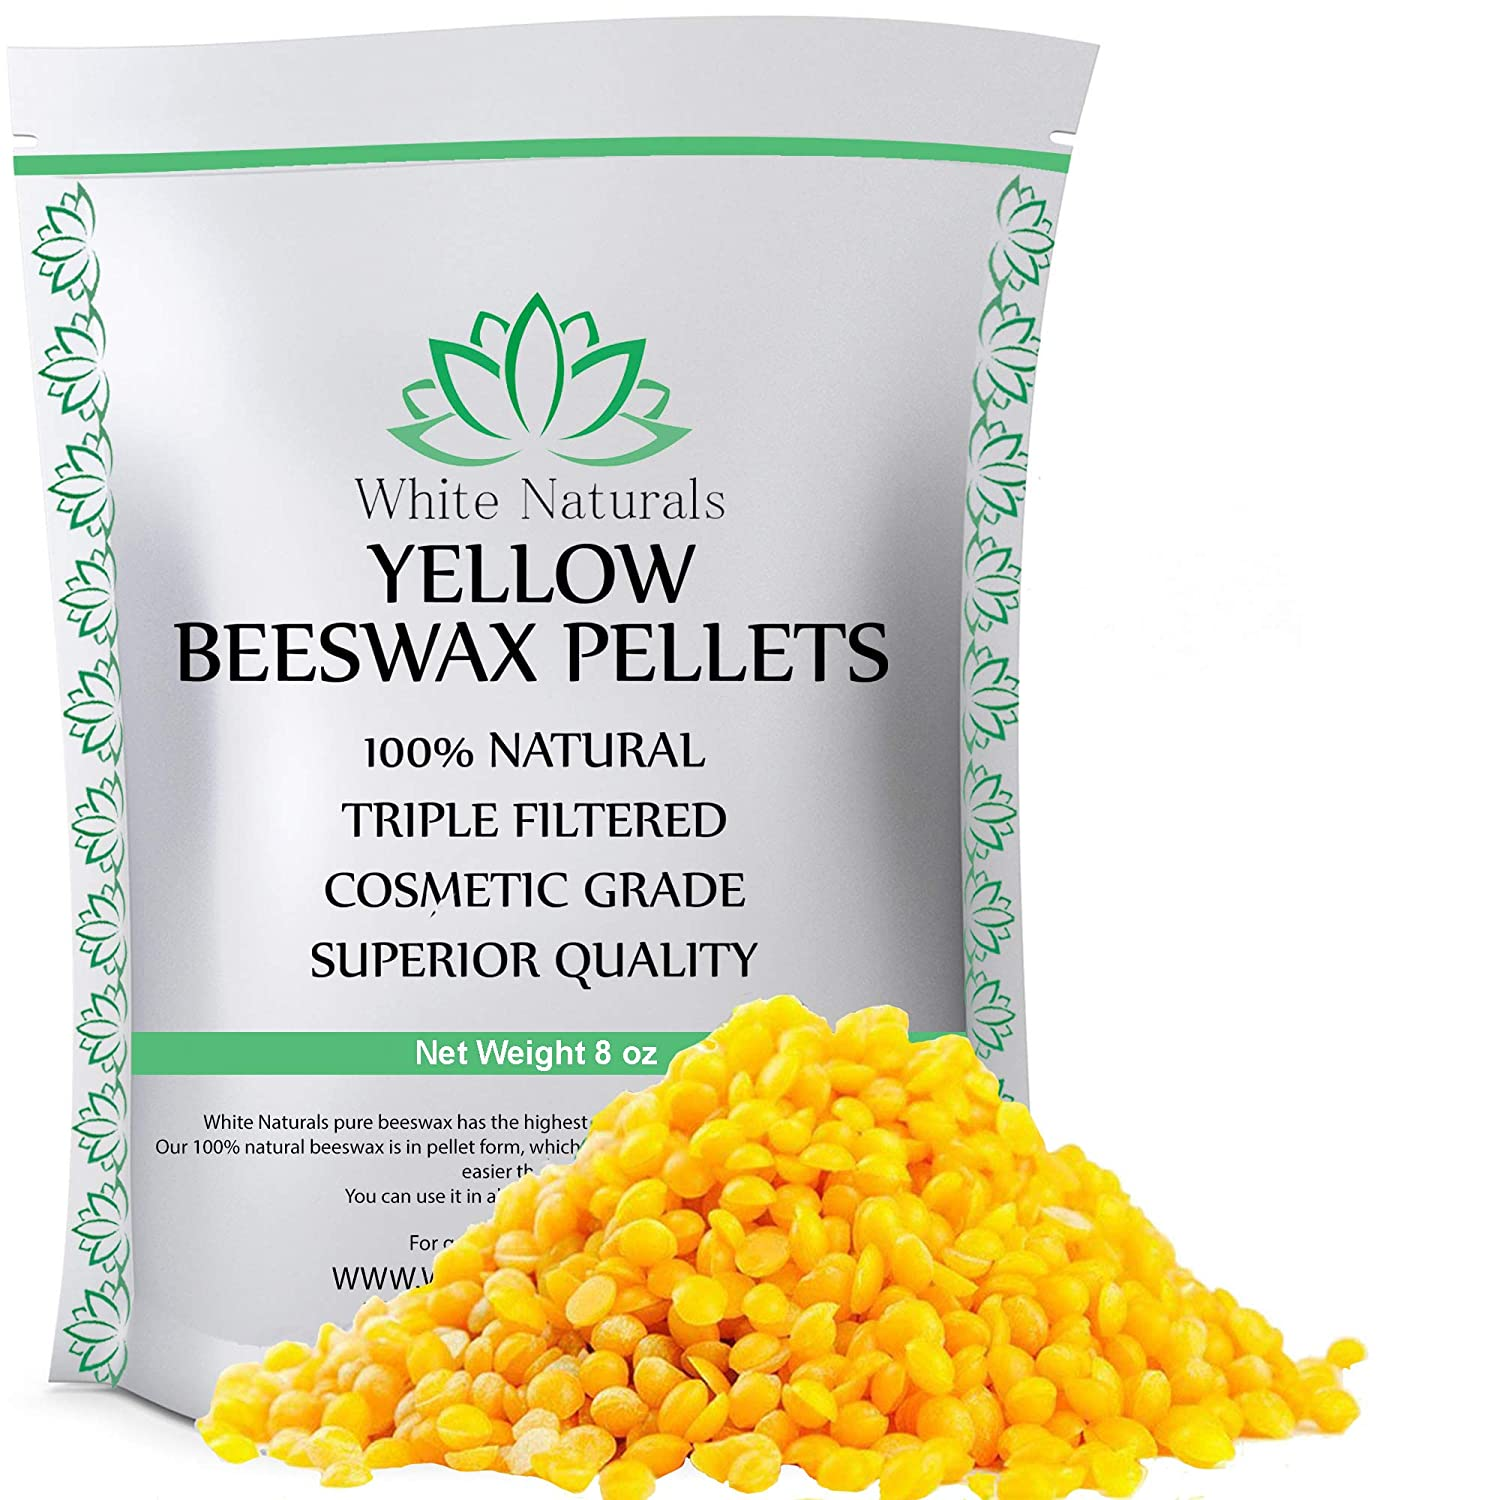 Beeswax Pellets 8 oz, Yellow, Pure, Natural, Cosmetic Grade, Bees Wax Pastilles, Triple Filtered, Great For DIY Projects, Lip Balms, Lotions, Candles By White Naturals